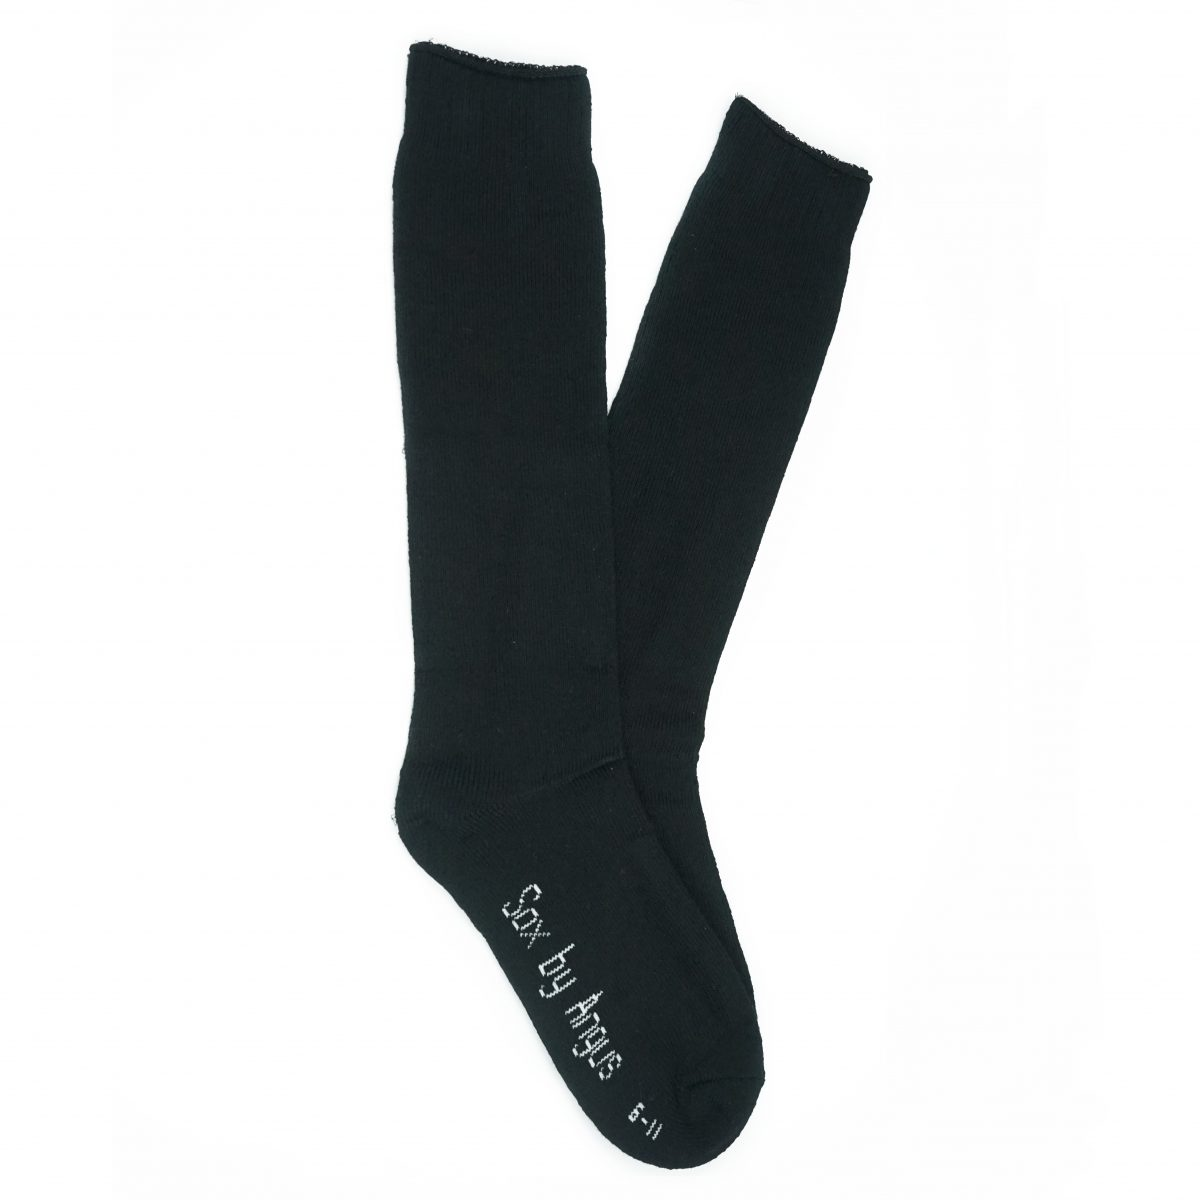 Bamboo Heavy Duty Socks - Knee High - Navy